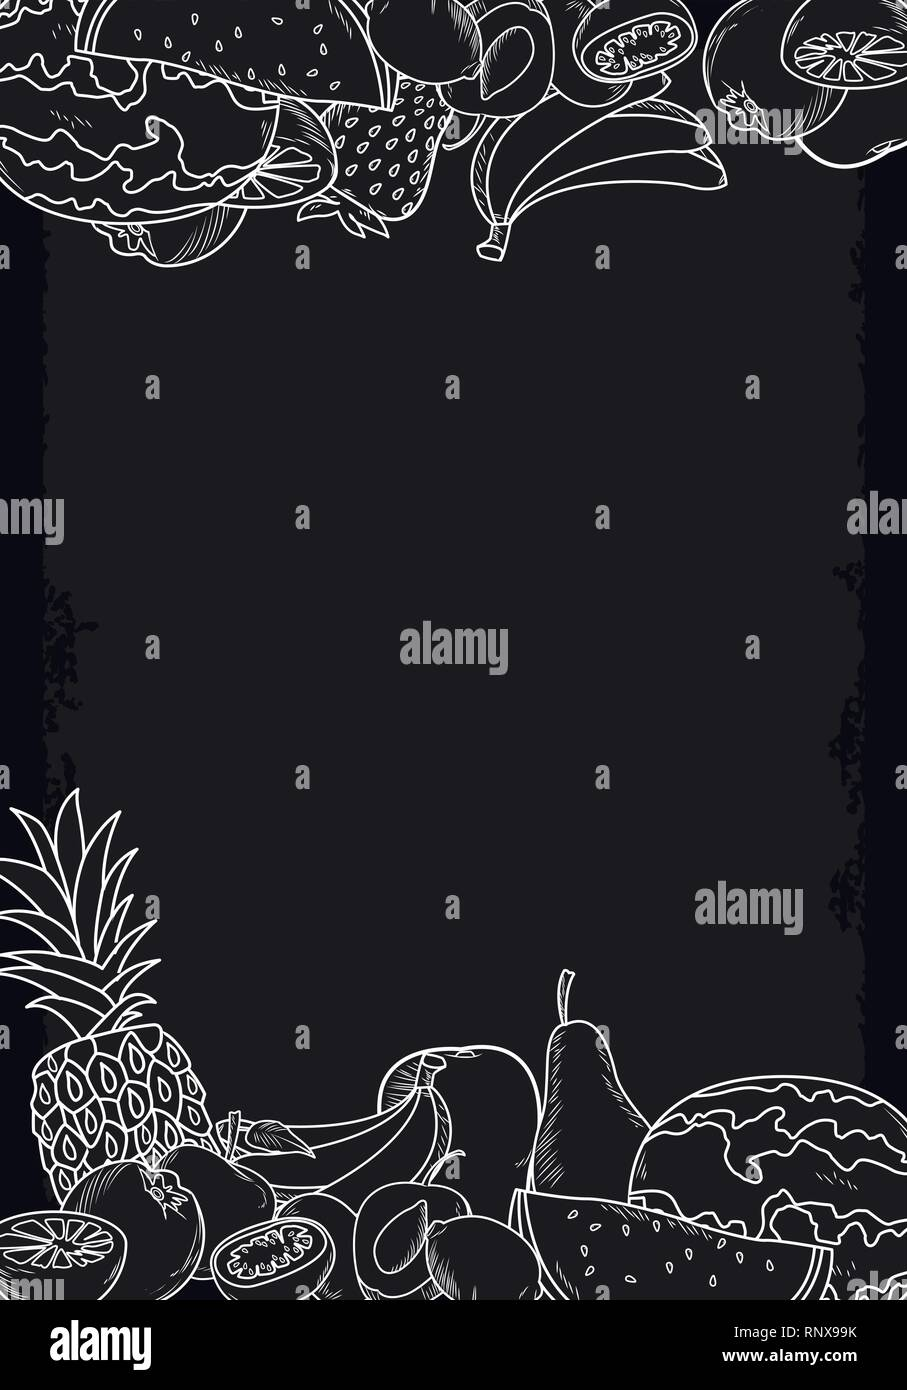 hand drawn fruits - Stock Image